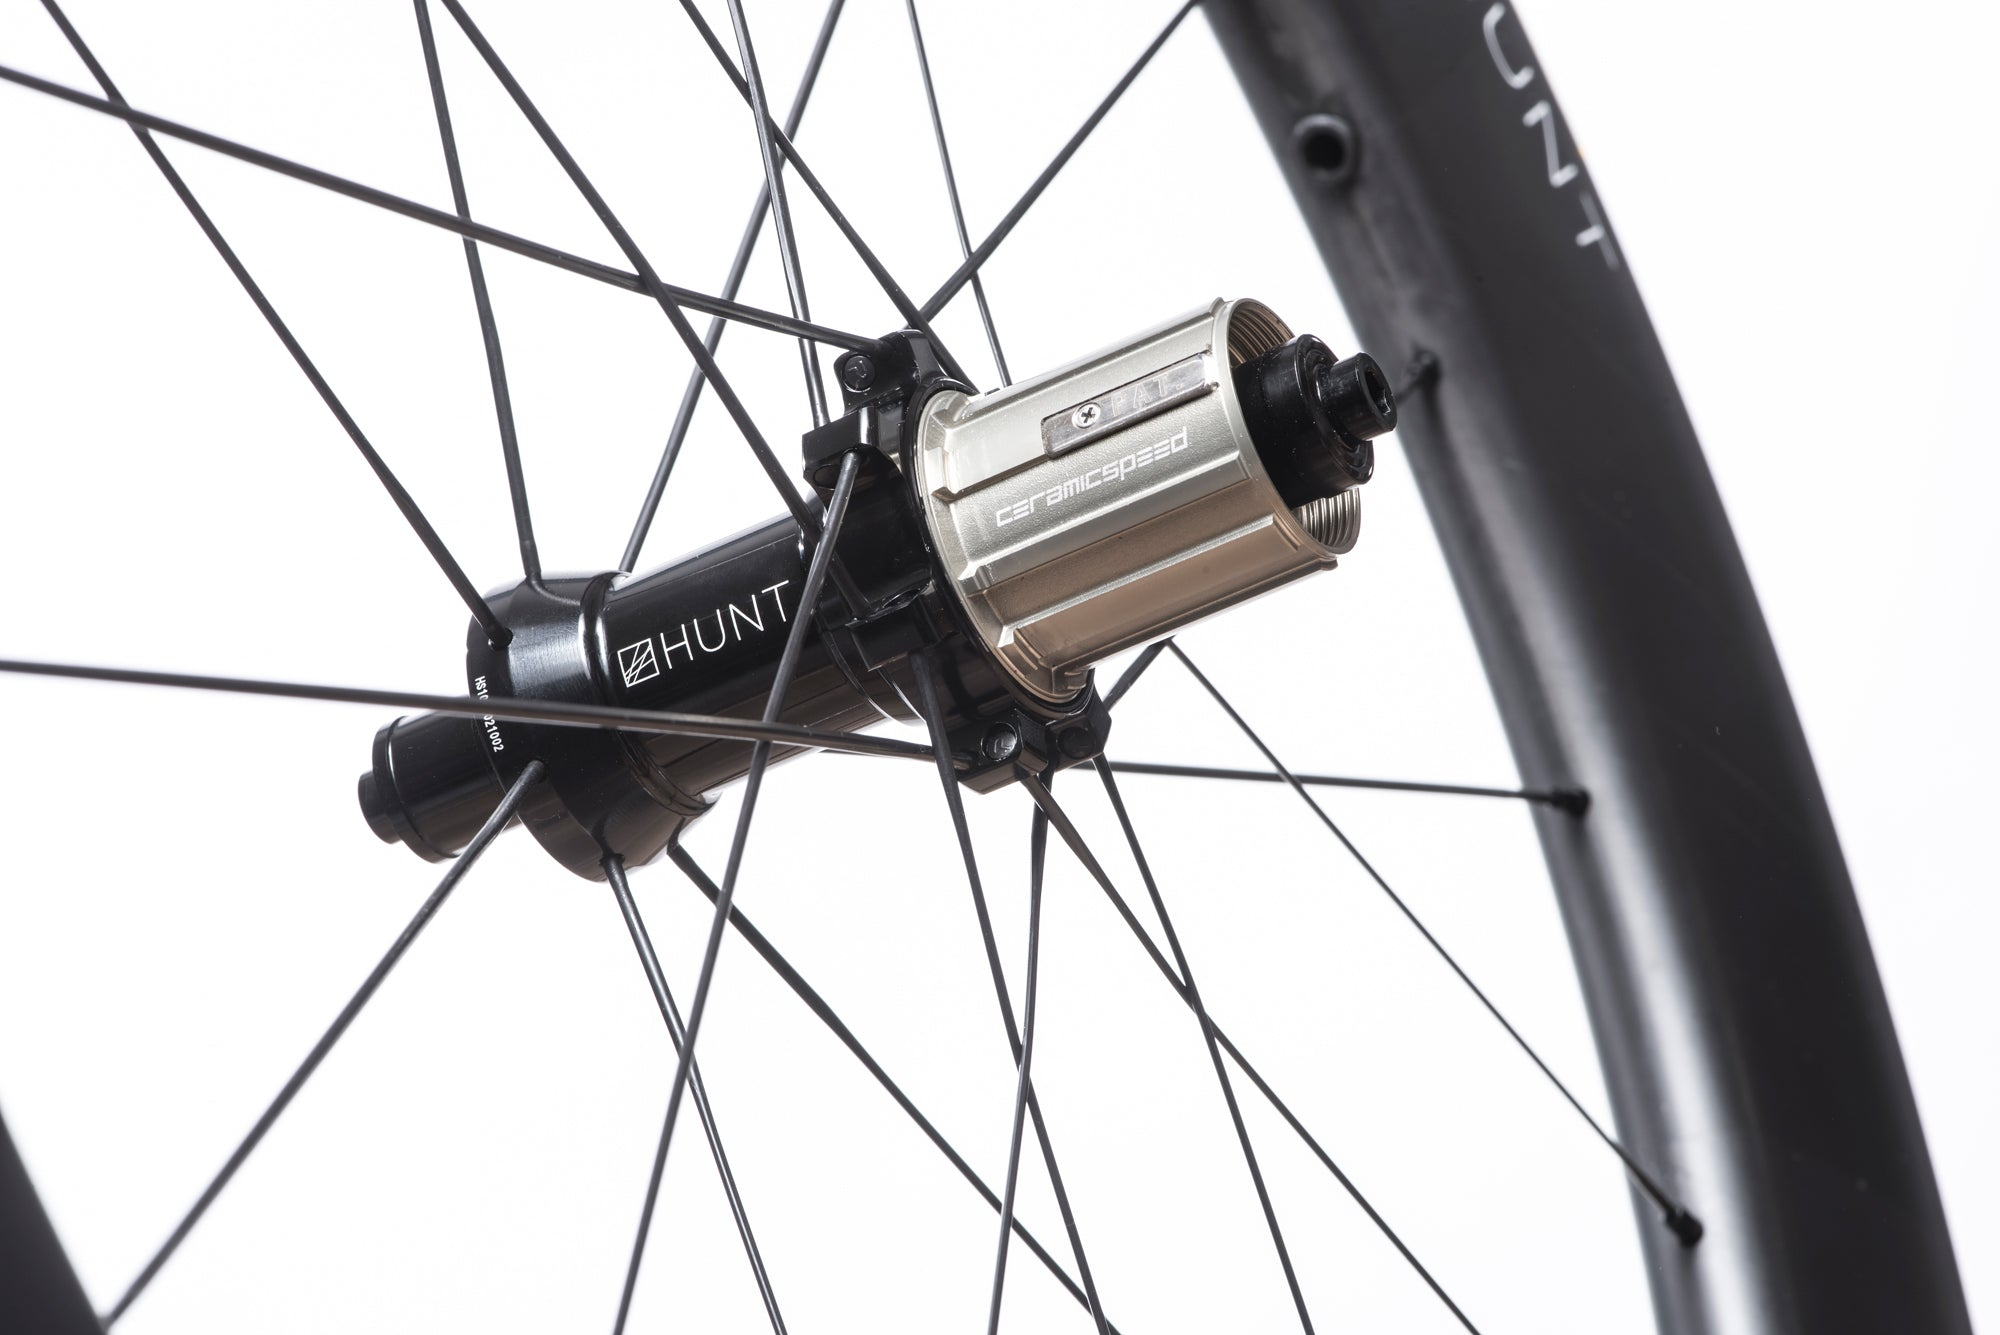 <h1>FREEHUB BODY</h1><i>Featuring 3 multi-point pawls with 3 teeth each and a 48t ratchet ring. The result an impressively low 7.5˚ engagement angle. Durability is a theme for HUNT, and so all our freehub bodies have Steel Spline Insert re-enforcements to provide excellent durability against cassette sprocket damage often seen on standard alloy freehub bodies. Includes 2 CeramicSpeed bearings in the body.</i>